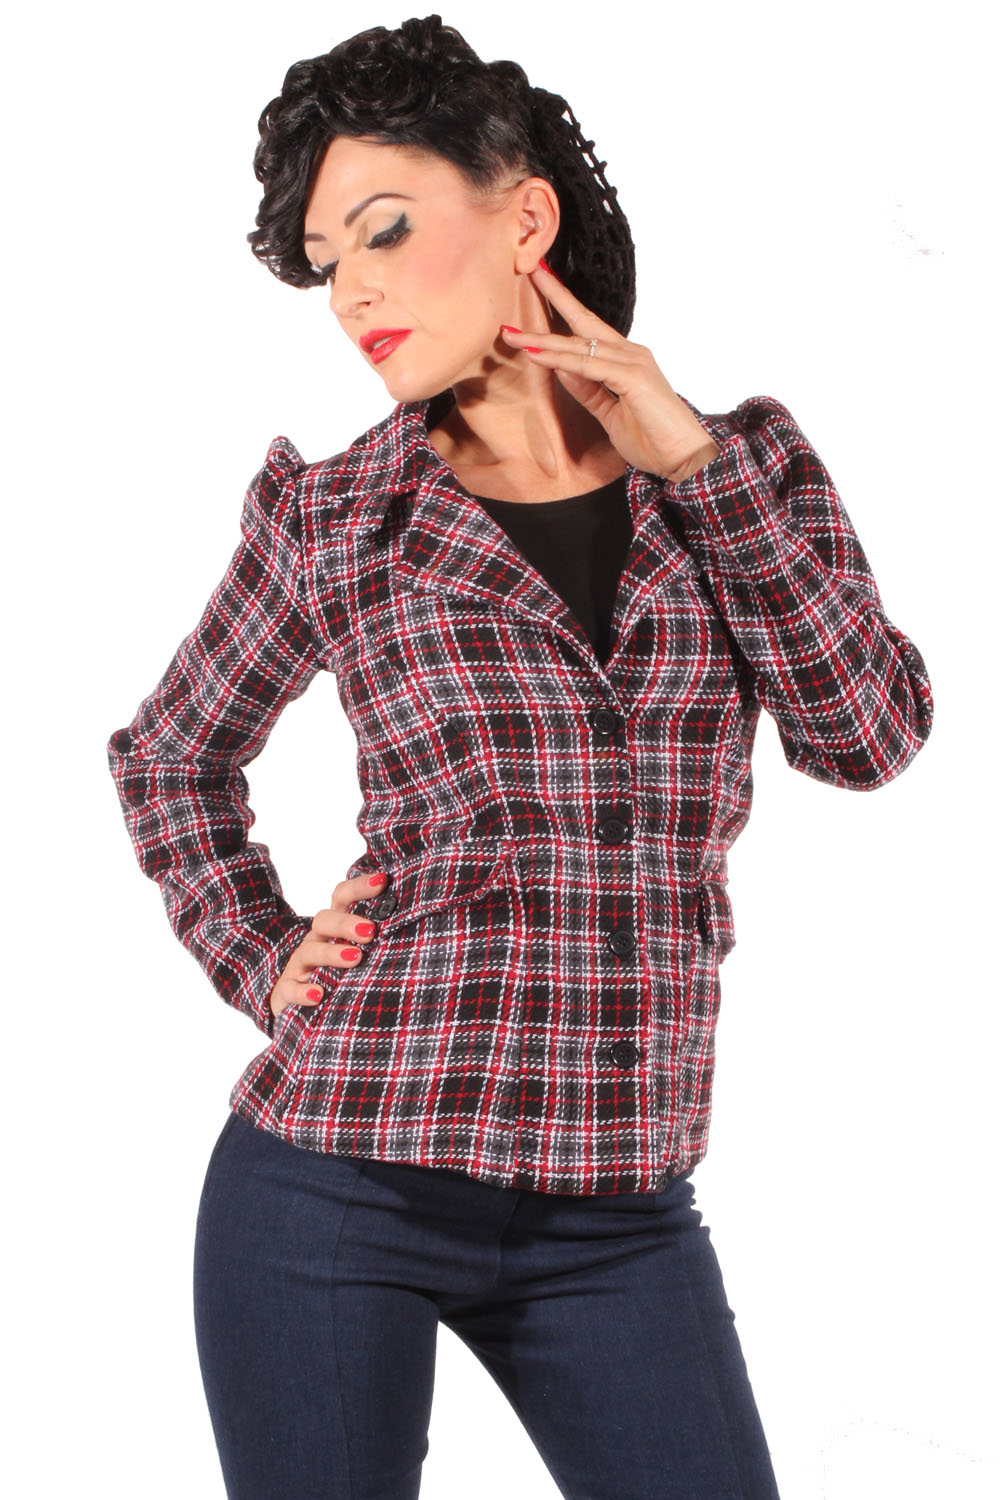 retro Tweed Wolle rockabilly Tartan Blazer Karo Kostüm Jacke Plaid